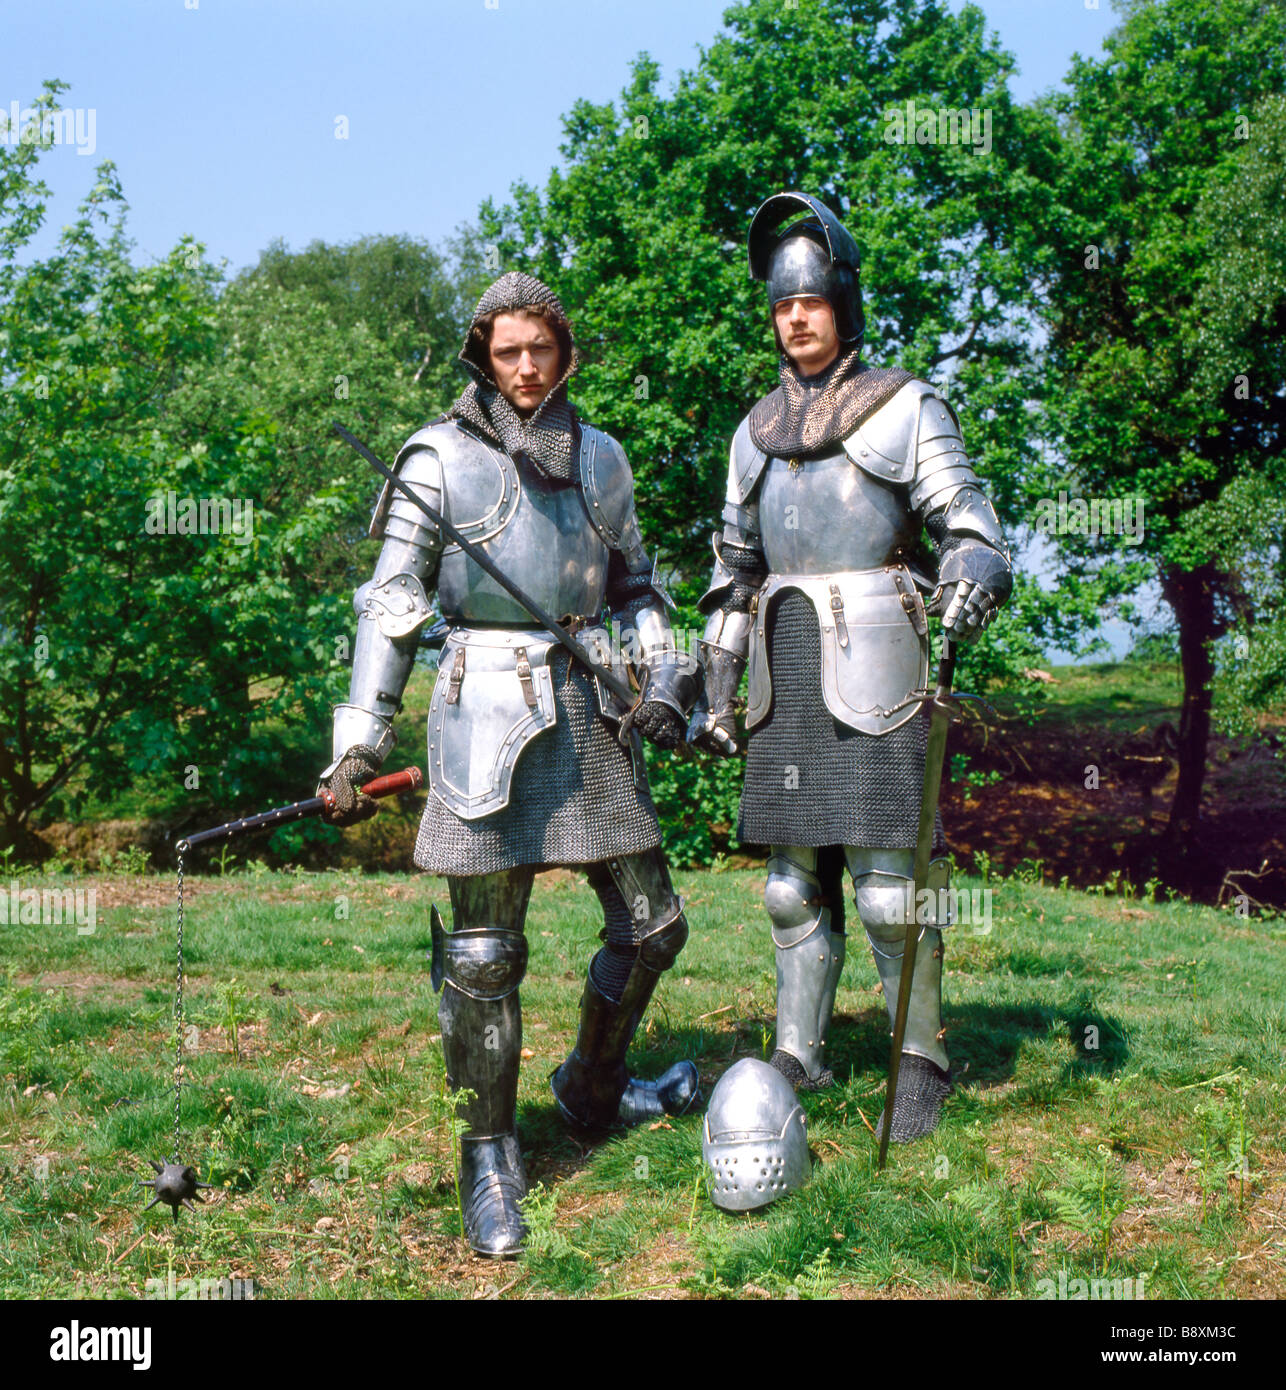 Medieval knights in shining armour historical costume posing for portrait wearing chainmail, helmets and swords - Stock Image